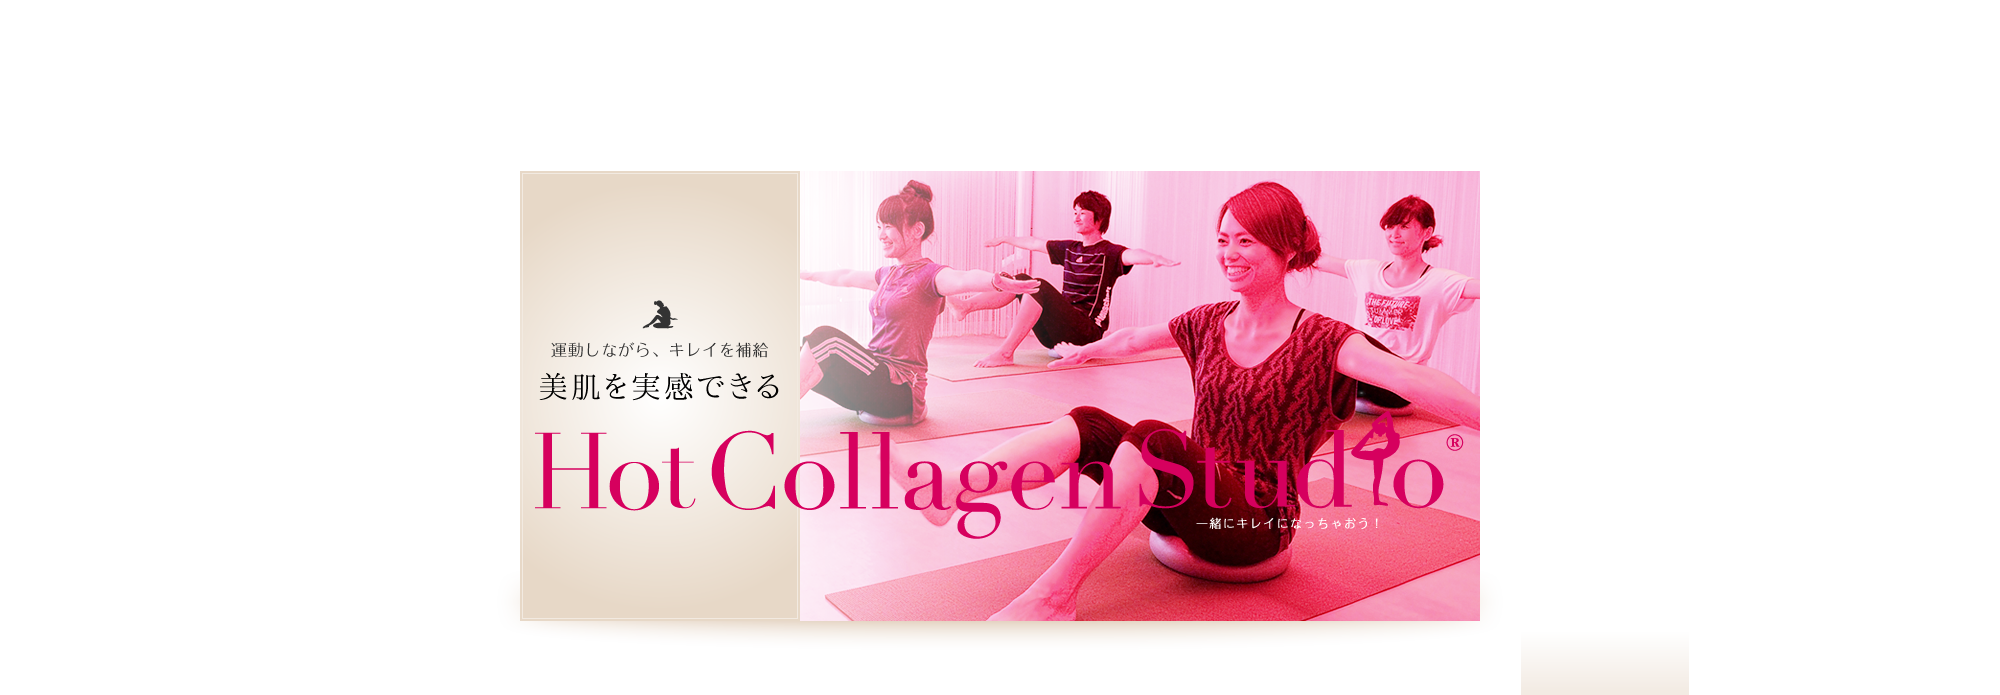 Collagen Studio